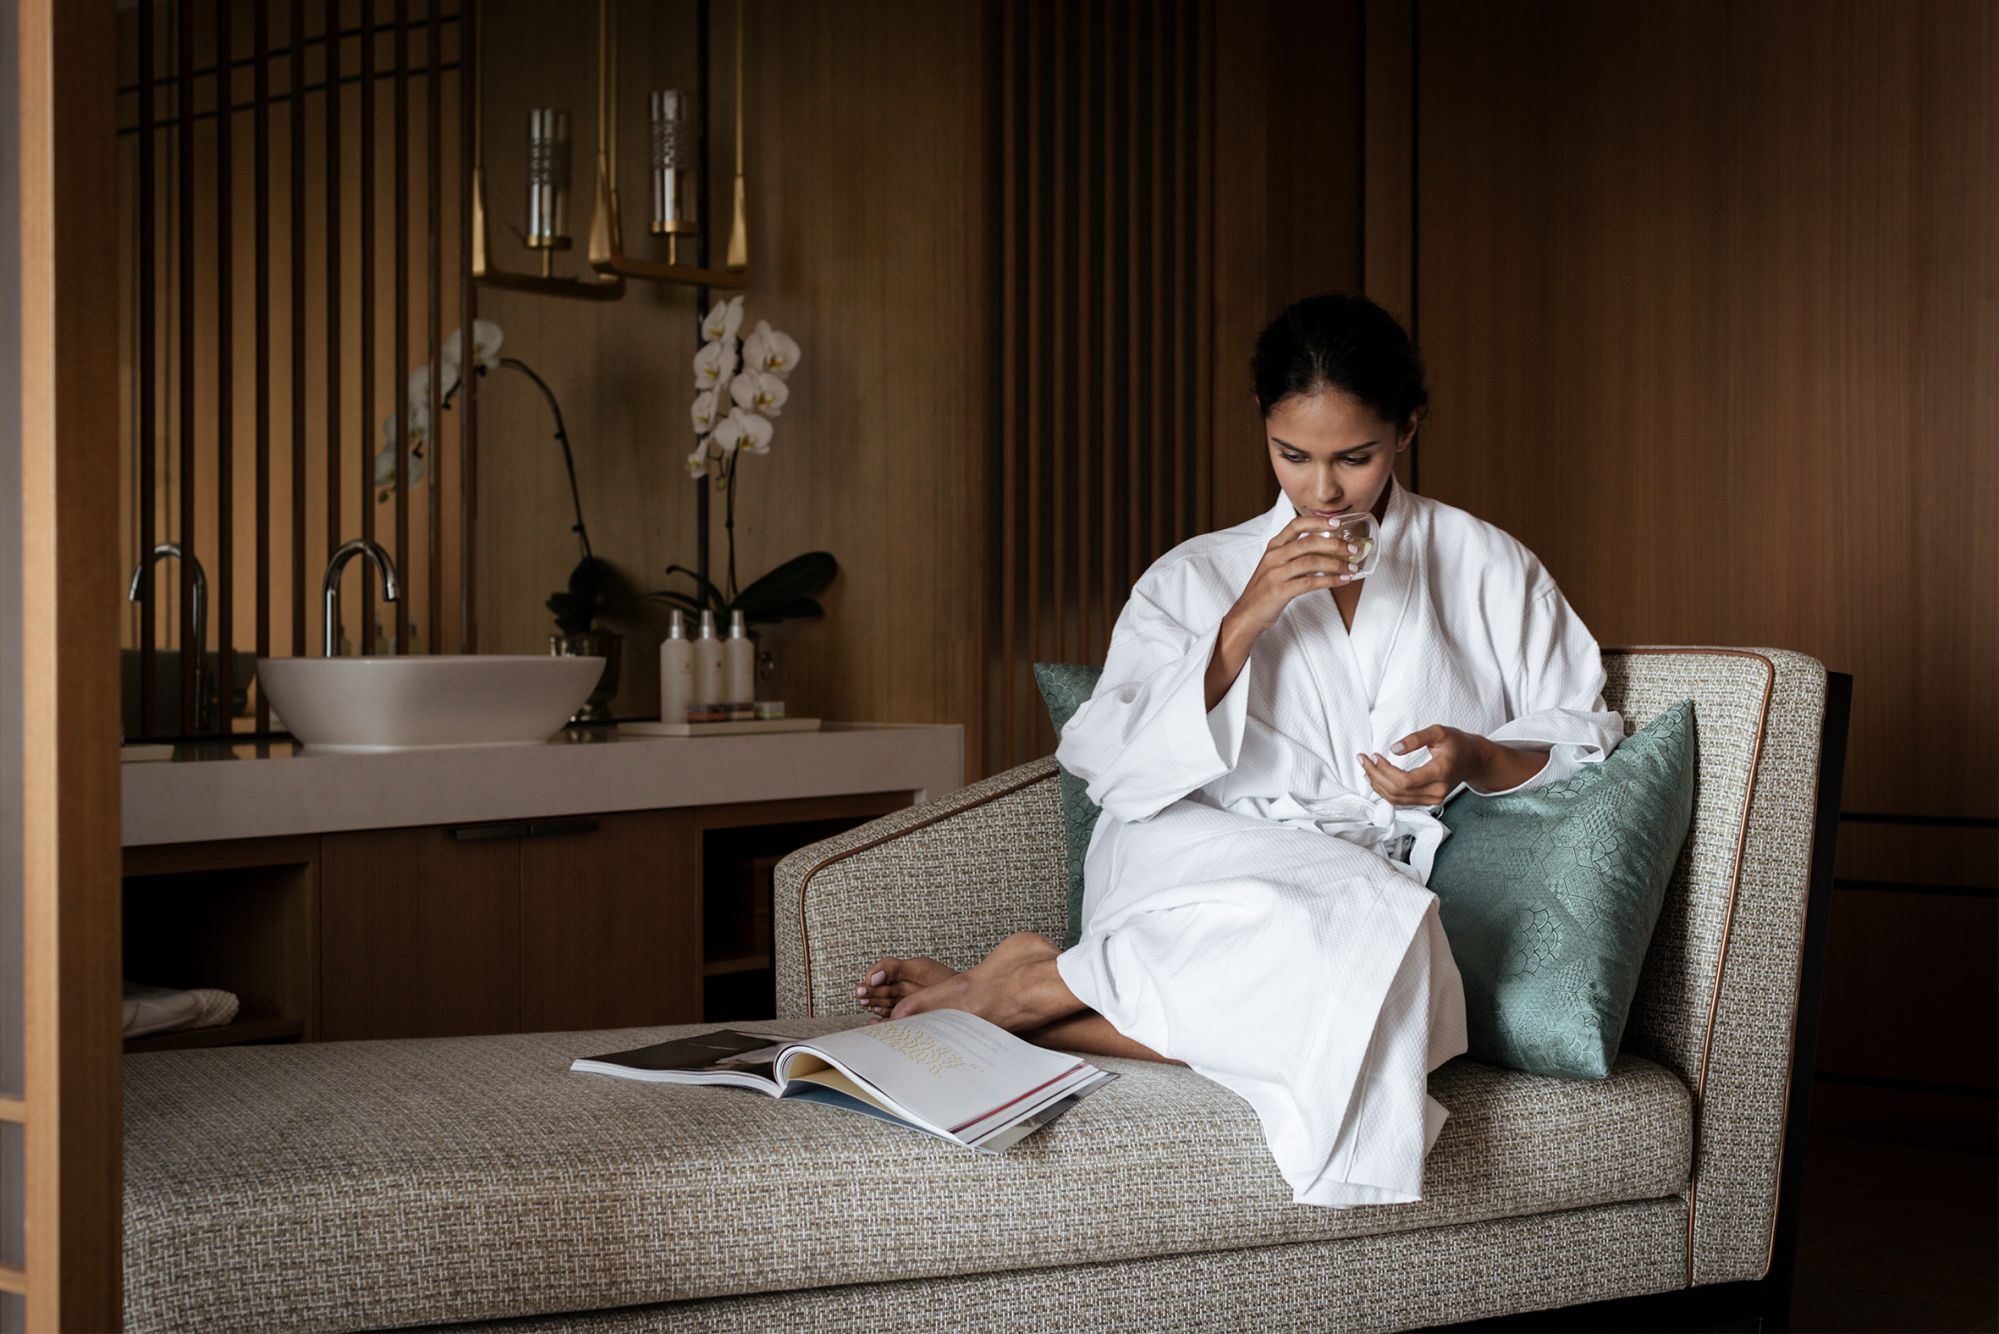 Tatler Tries: A Review of the Signature Asian Blend Massage at Chi, The Spa in Shangri-La Hotel Singapore